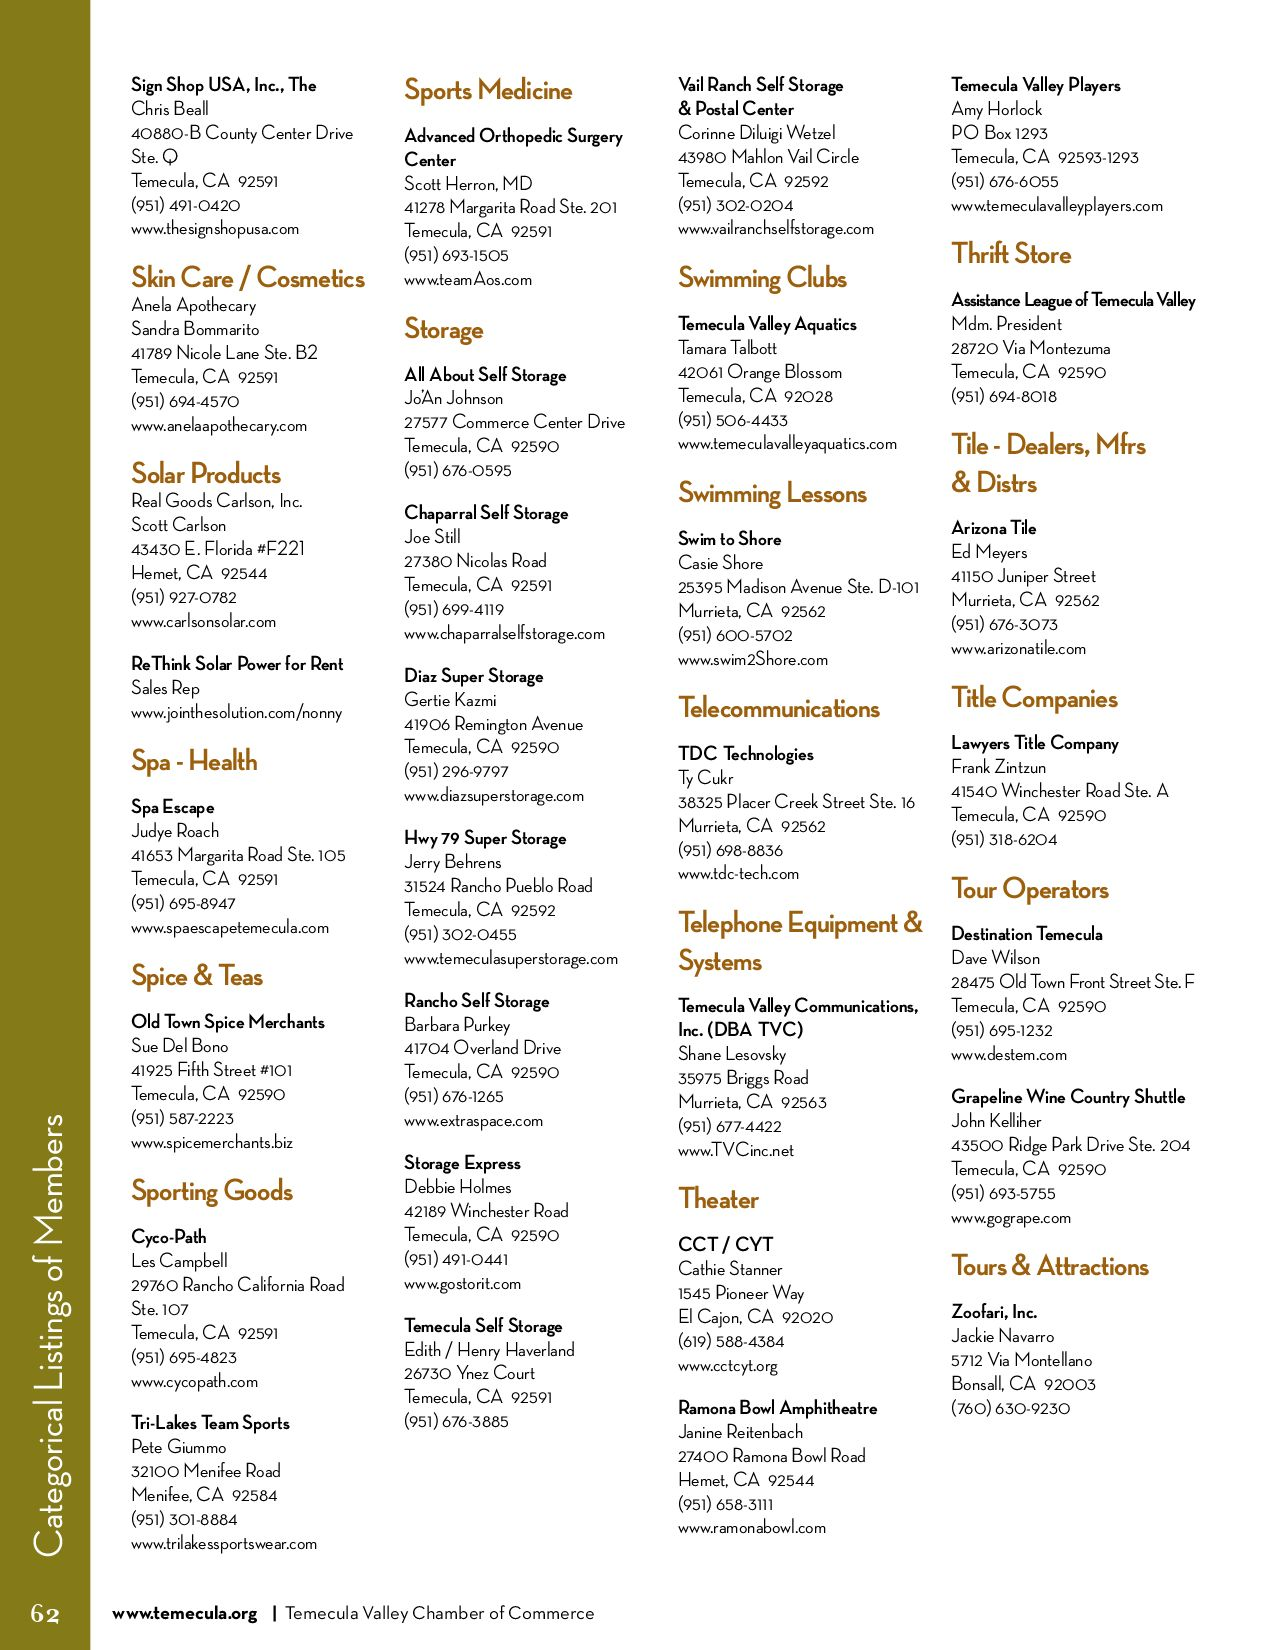 Temecula Valley Chamber of Commerce Business Resource Guide